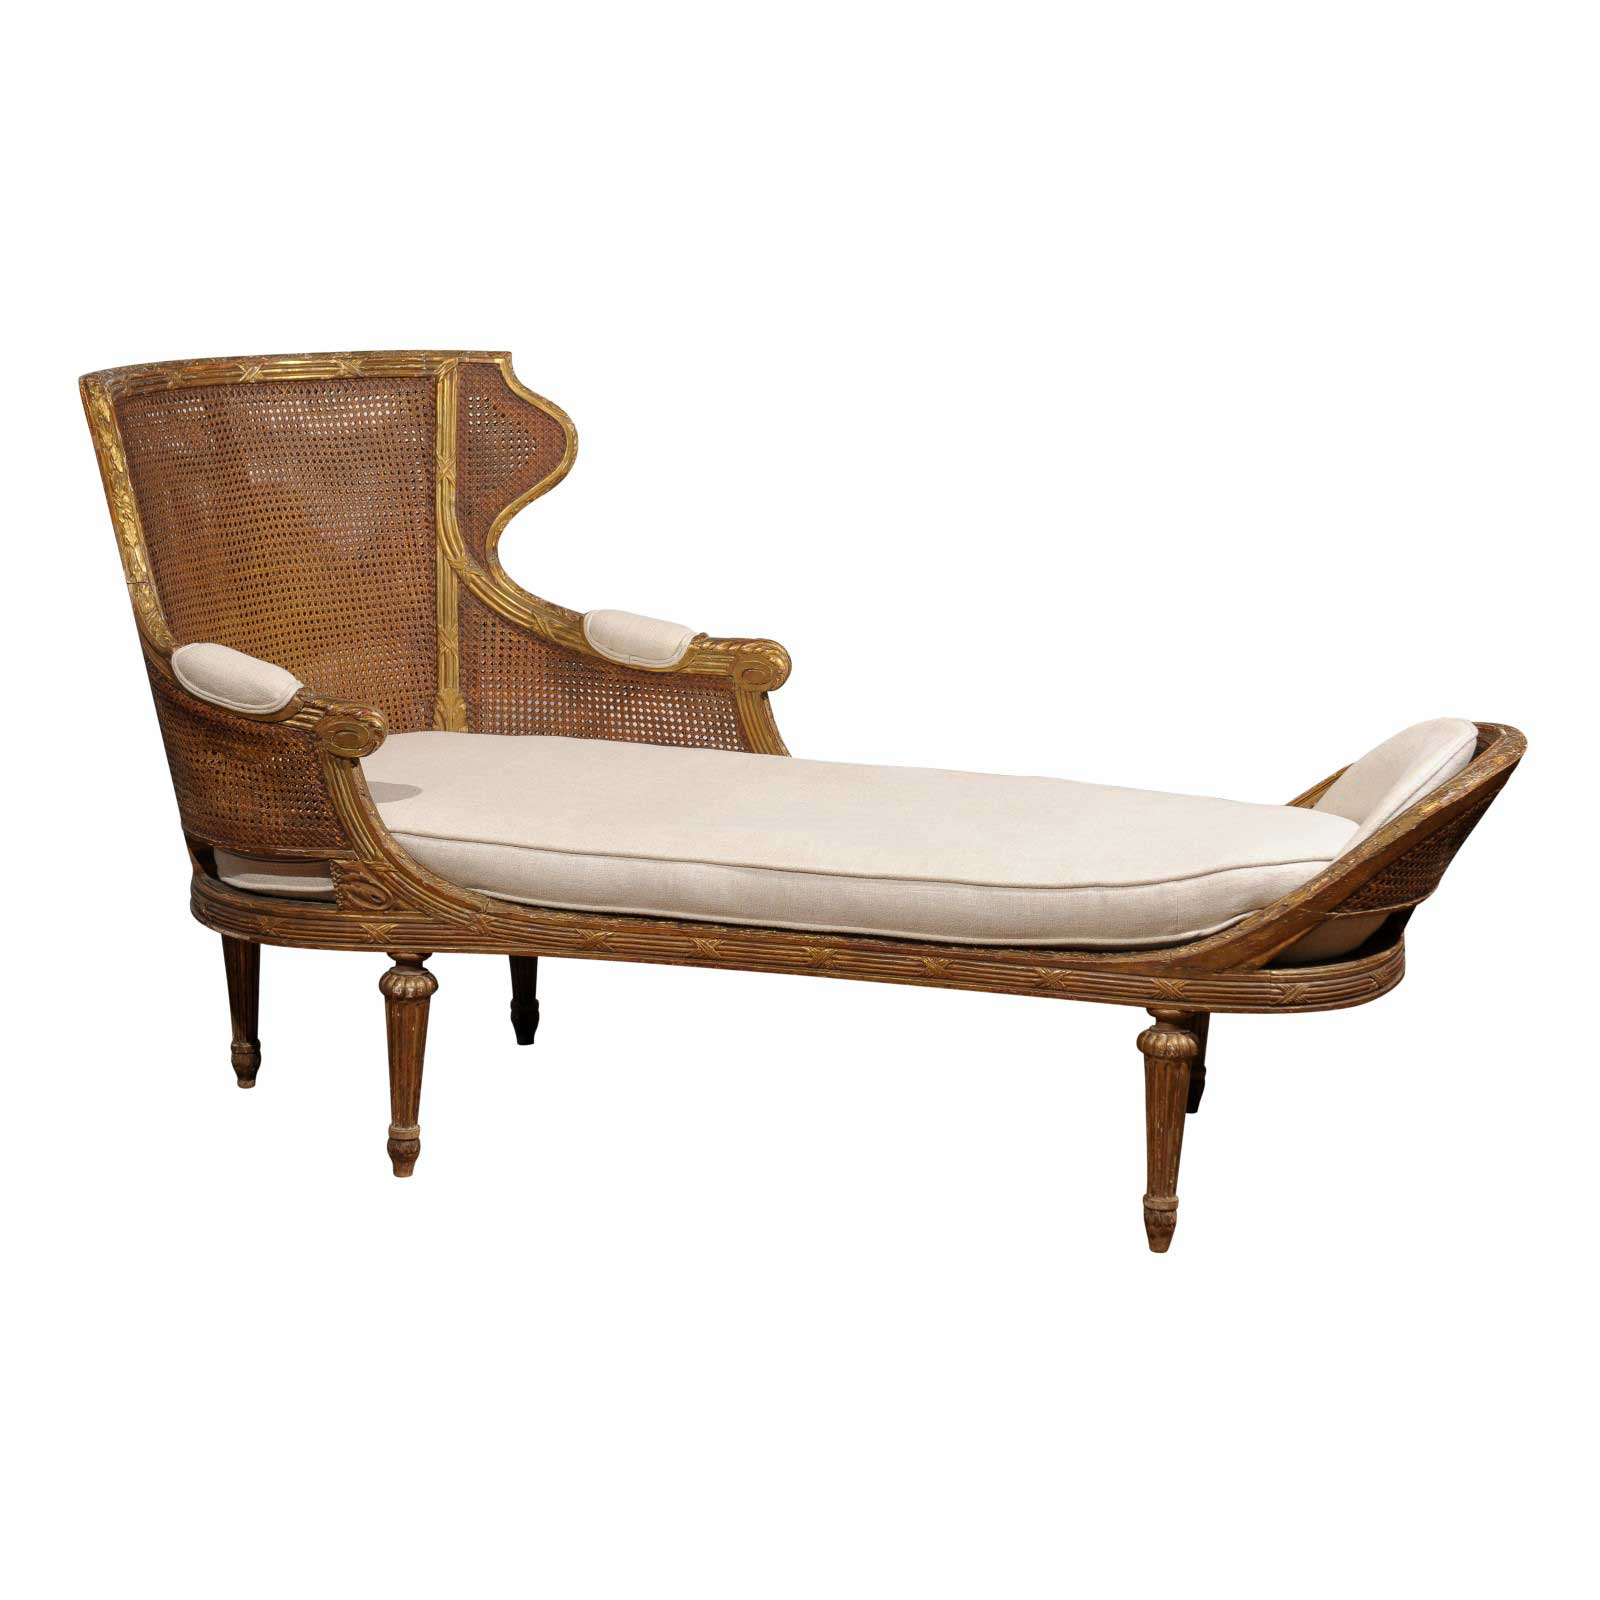 Chaise Style Louis 16 19th Century French Louis Xvi Style Gilt Wood Double Cane Chaise Lounge